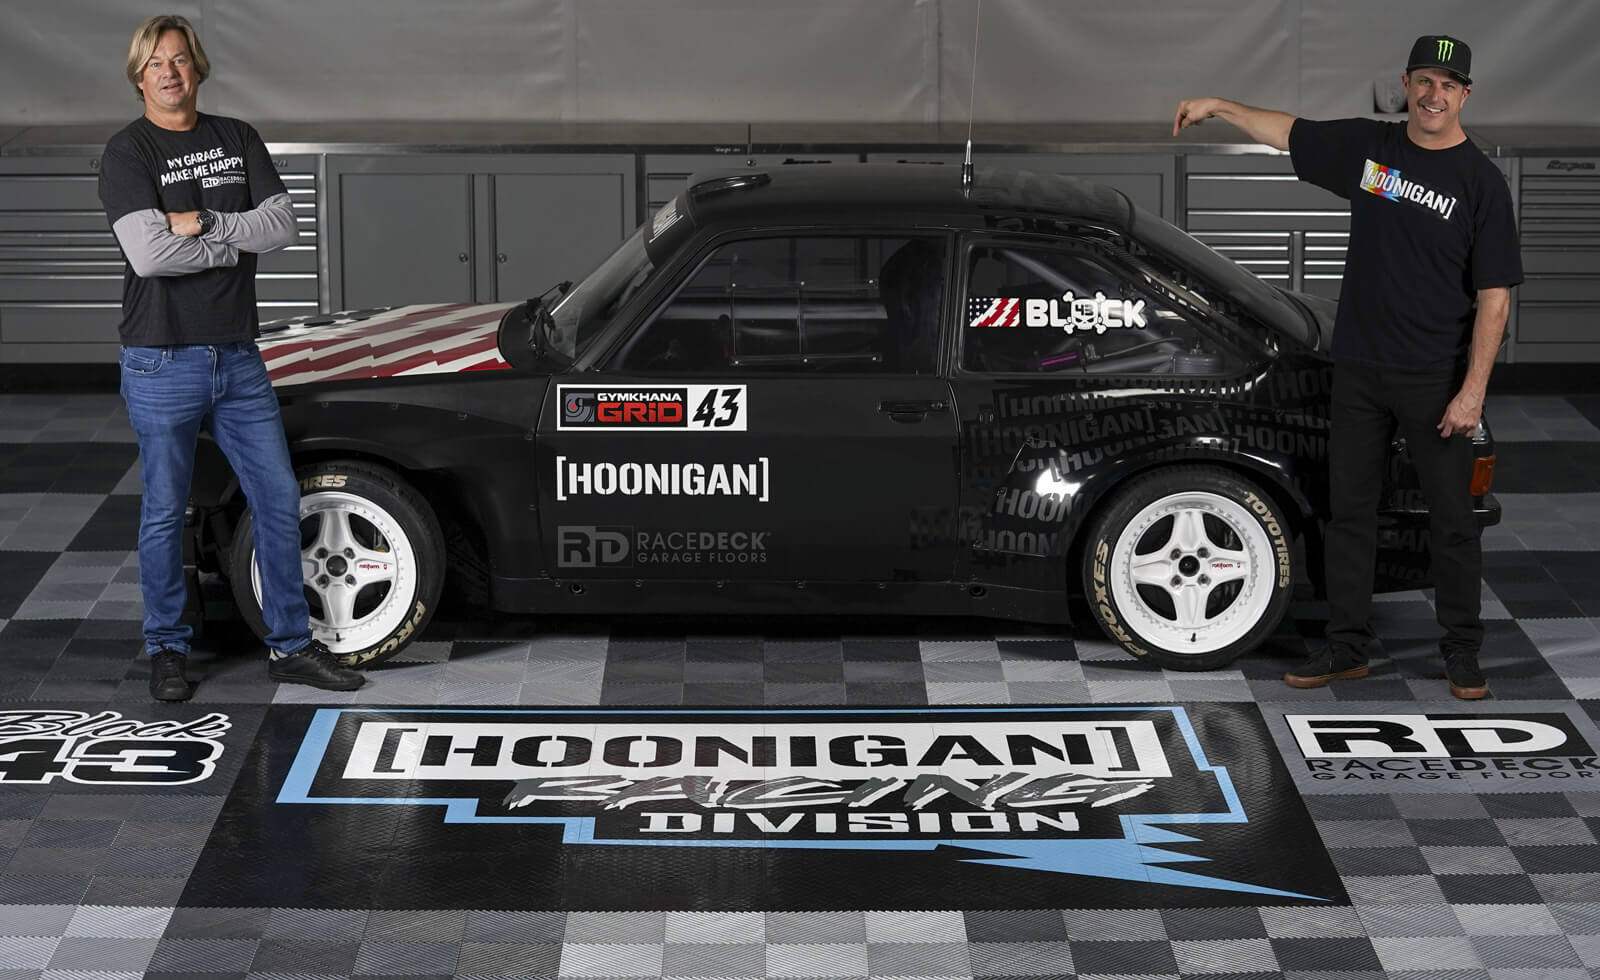 Jorgen and Ken Block at the Hoonigan Racing Division with the Ford Escort MK2